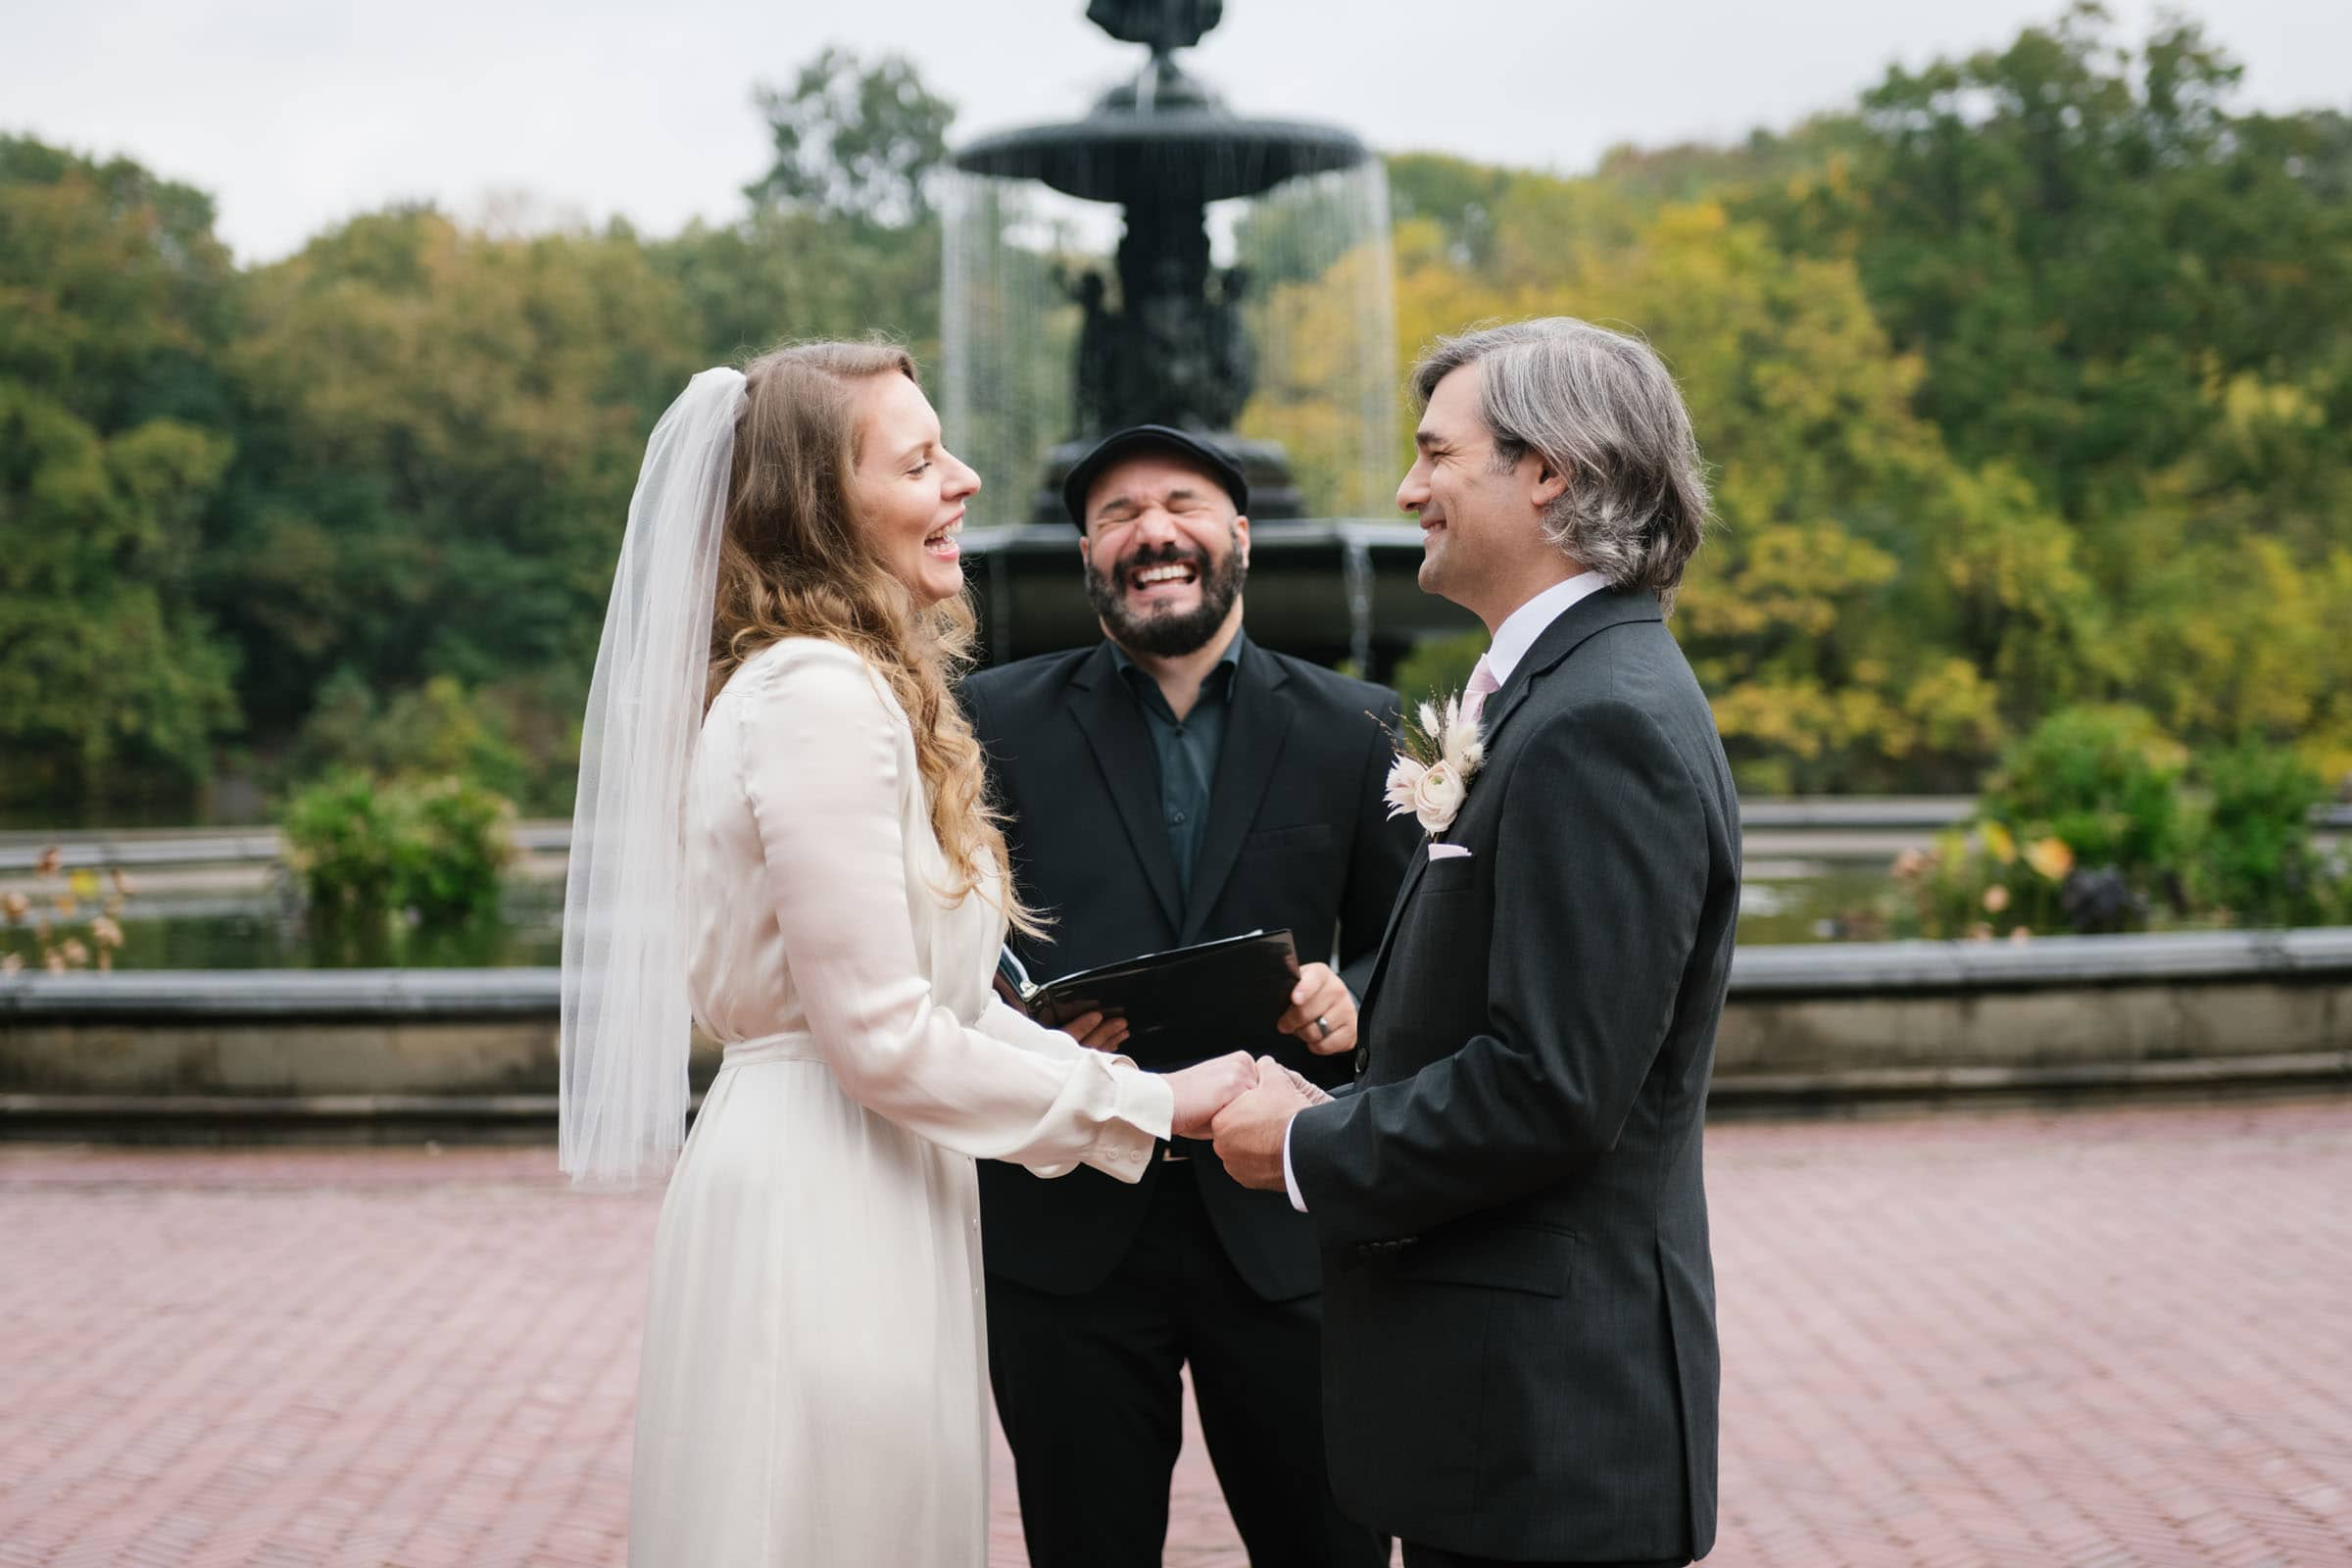 Bethesda Fountain elopement in Central Park NYC. Small wedding at Bethesda Terrace and Fountain in New York.